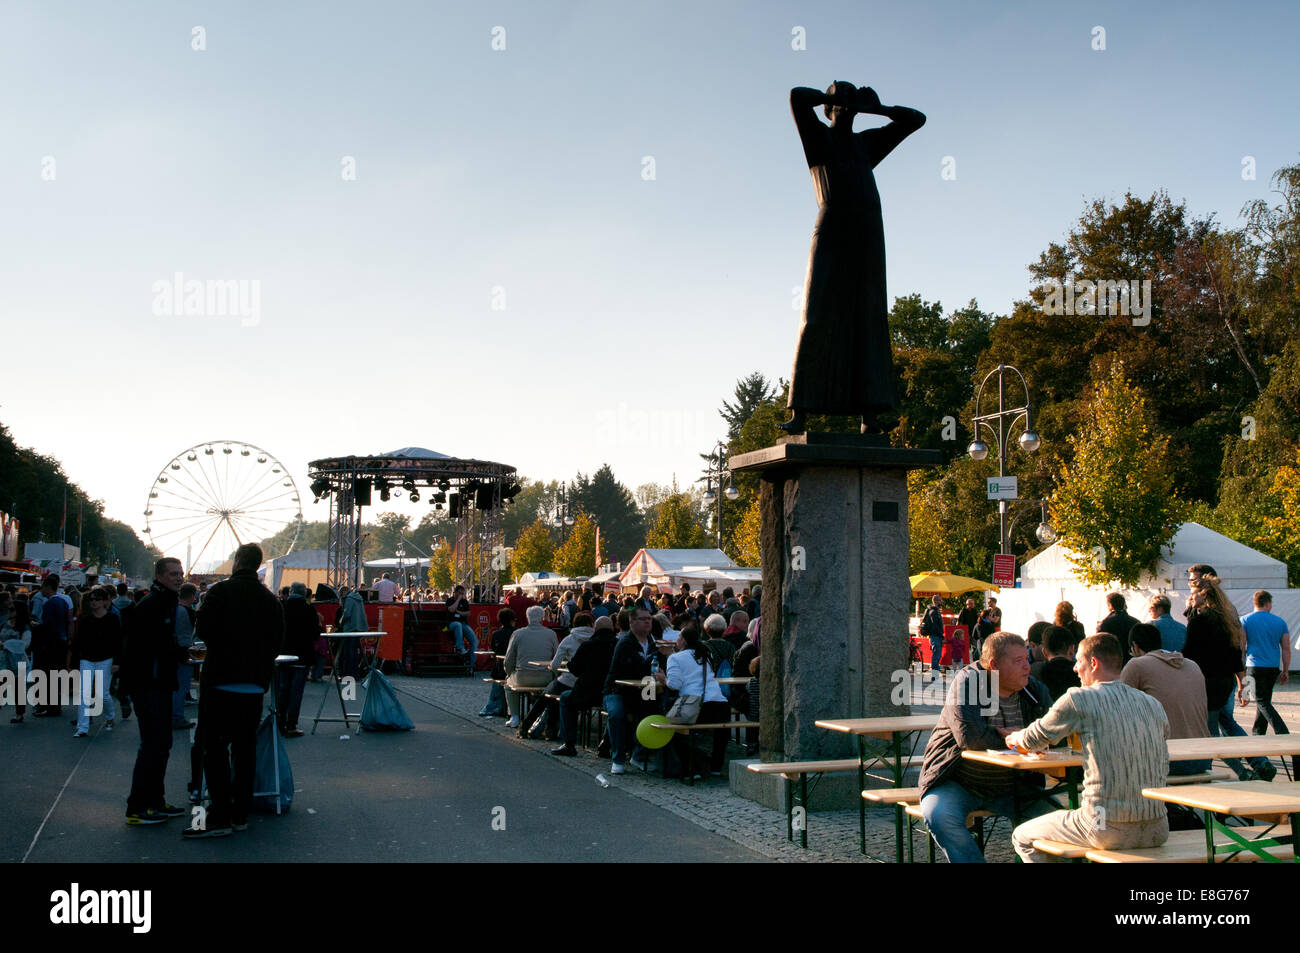 Street party celebrating German Unity Day in Berlin - Stock Image